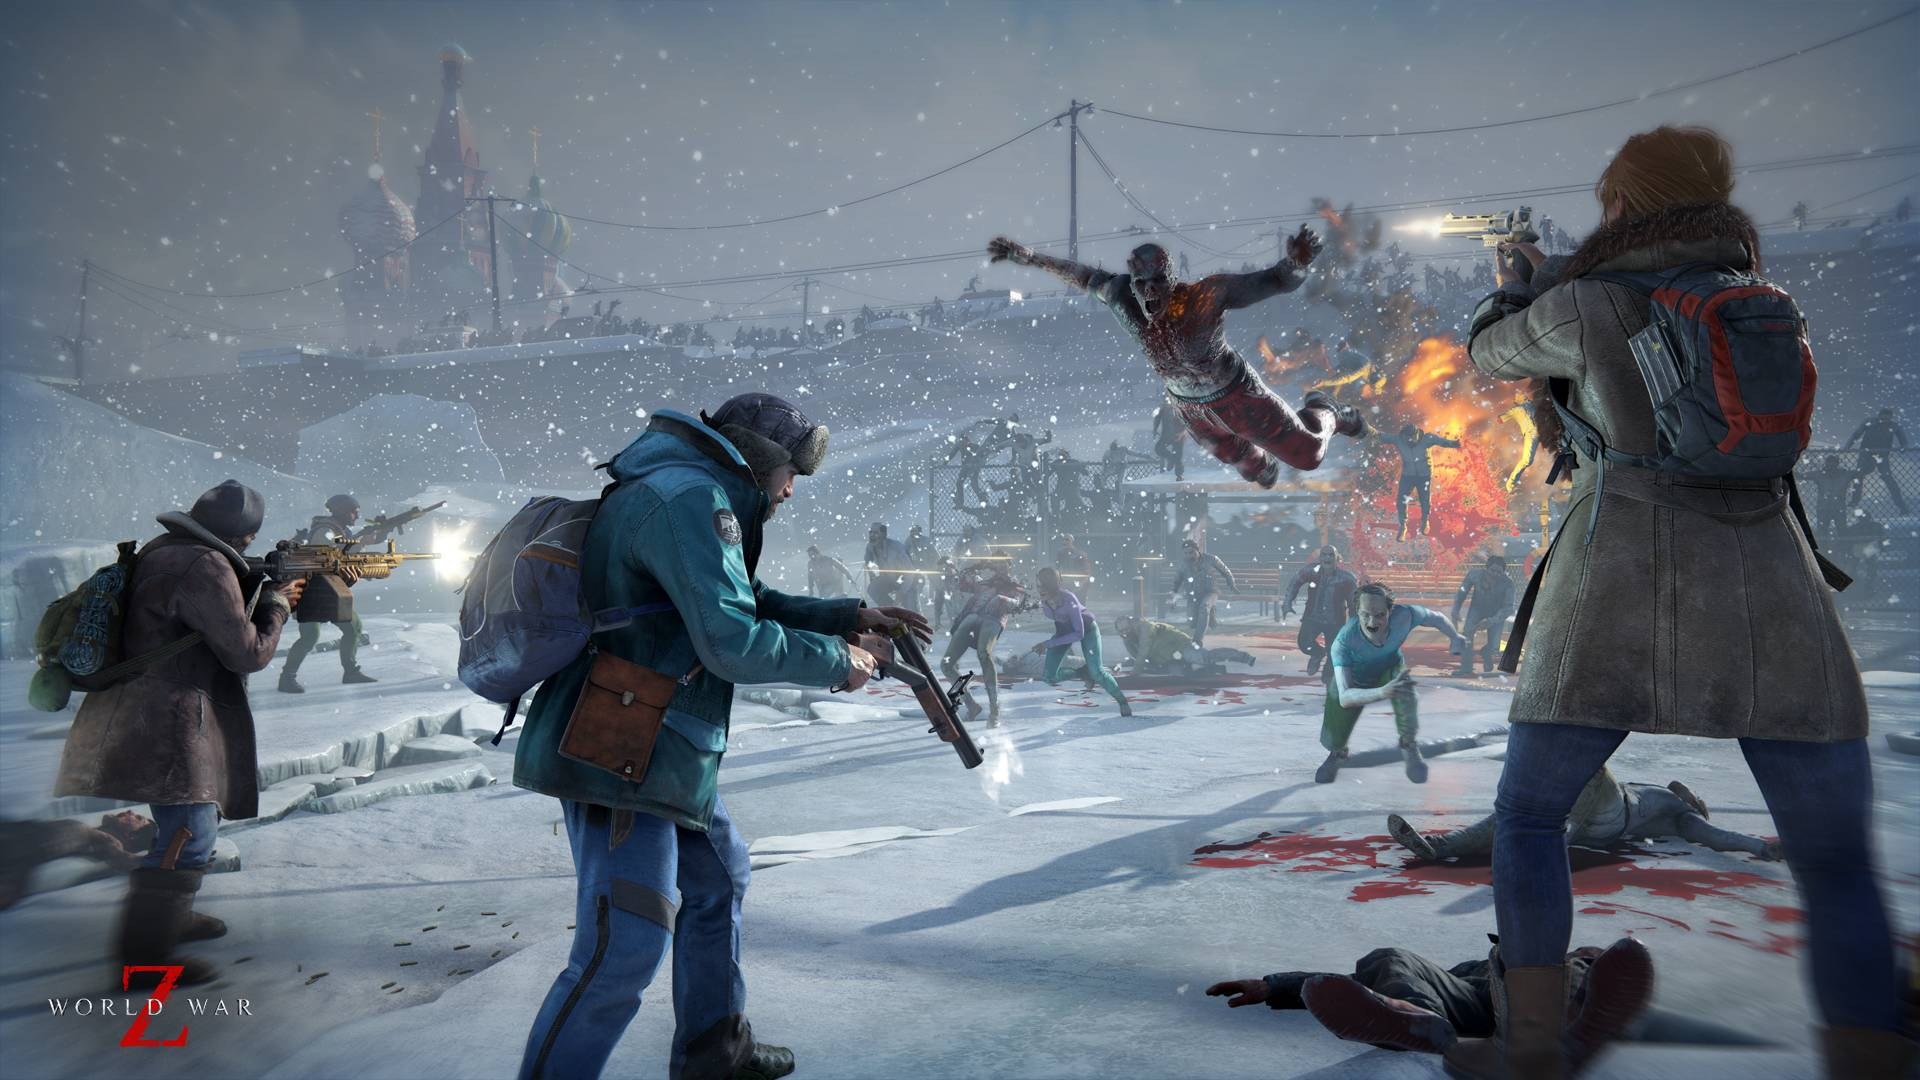 Co-op zombie shooter 'World War Z' close to 2 million units sold